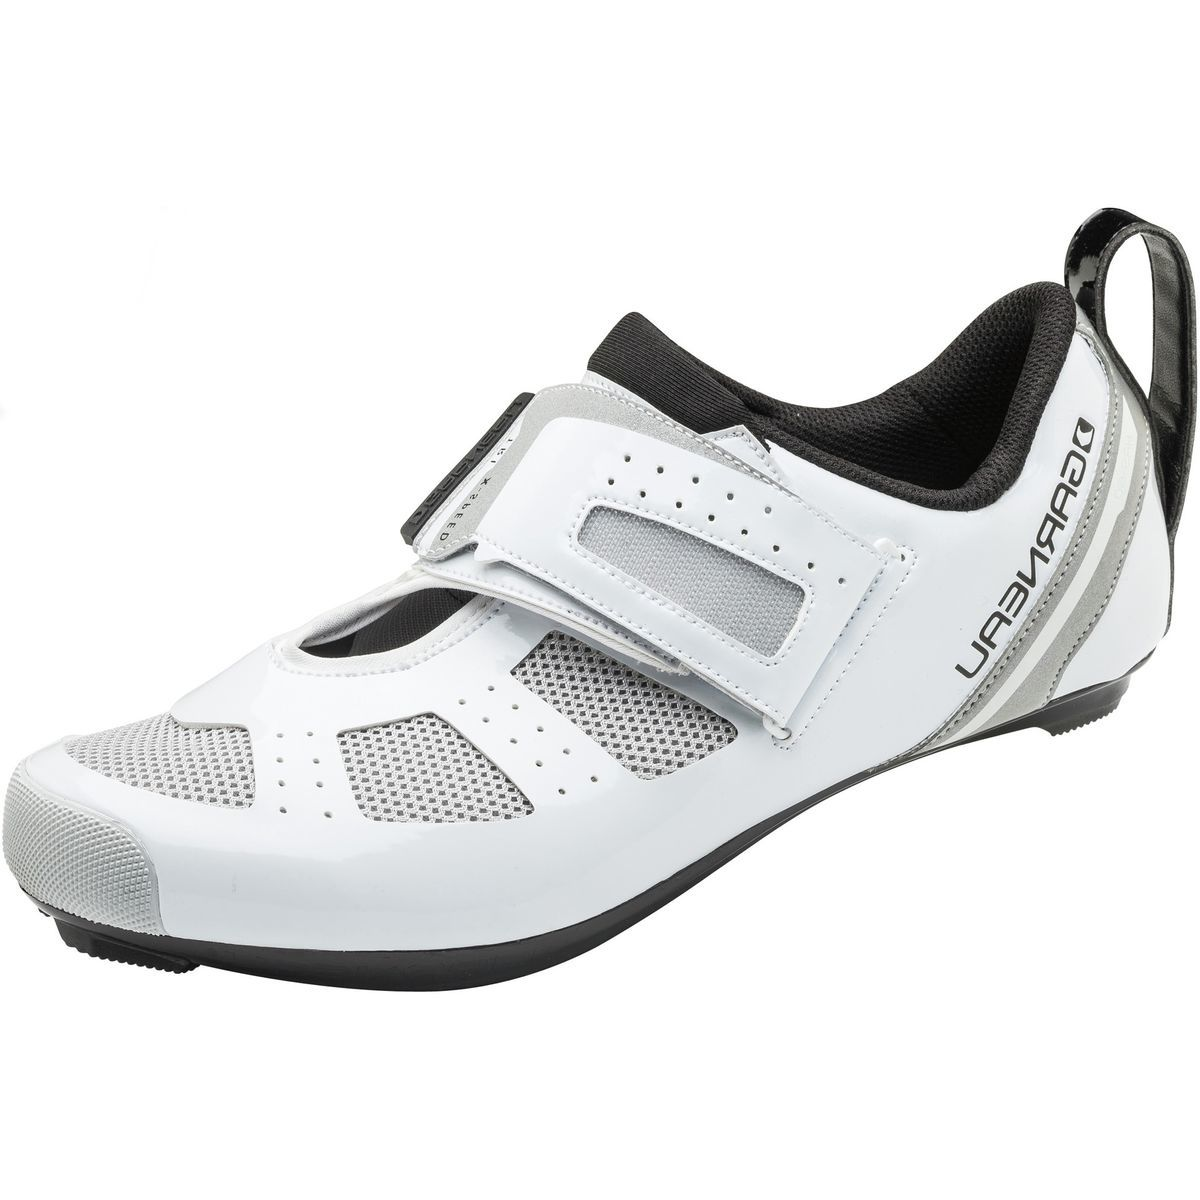 Louis Garneau Tri X-Speed III Shoe - Men's